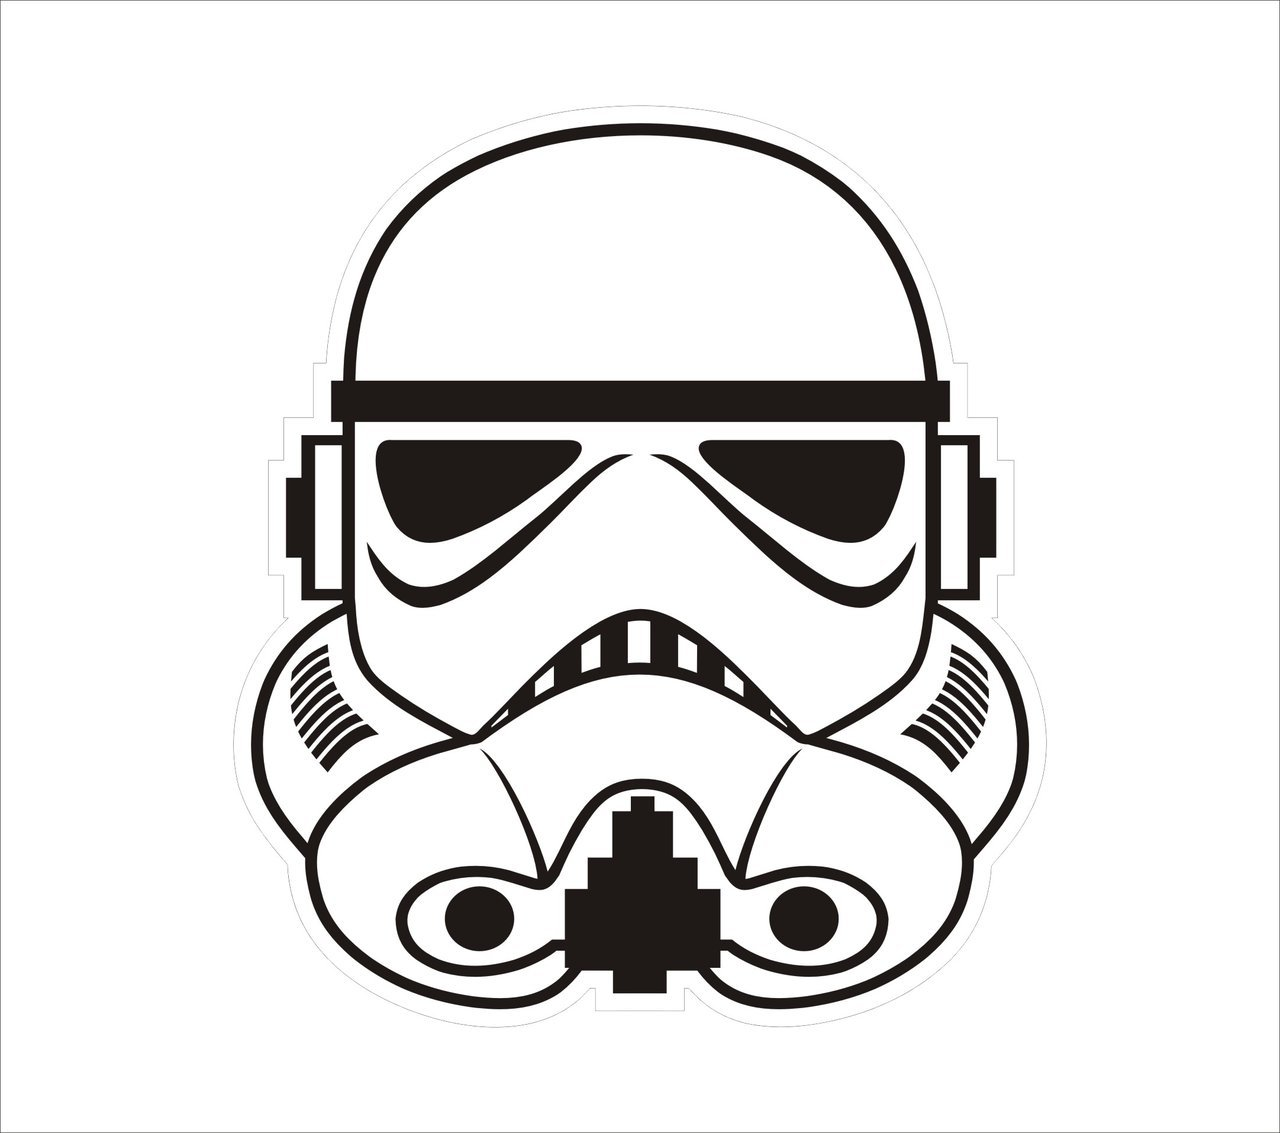 Star Wars clipart easter KB 109 Inventables 9cp5K8dcE Vectorizing